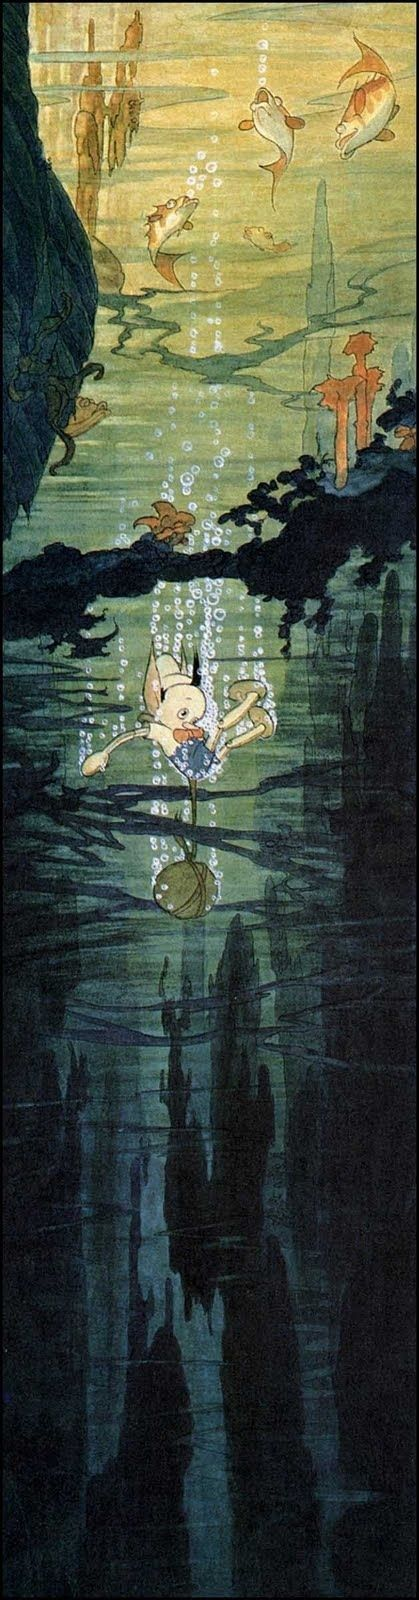 The Art Of Disney's Gustaf Tenggren